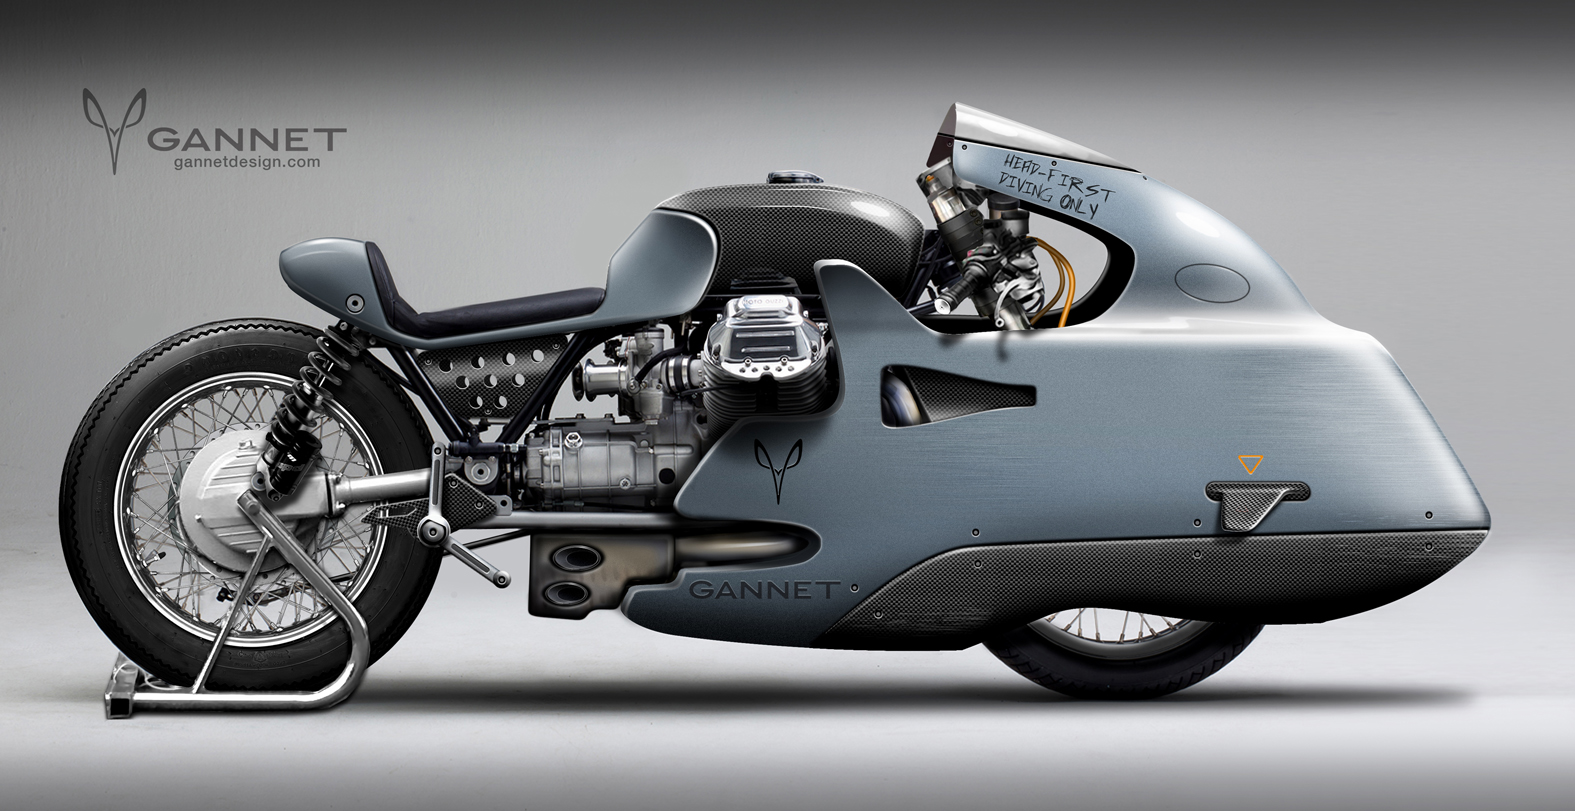 Gannet Design Moto Guzzi Sprinter Is A Truly Different